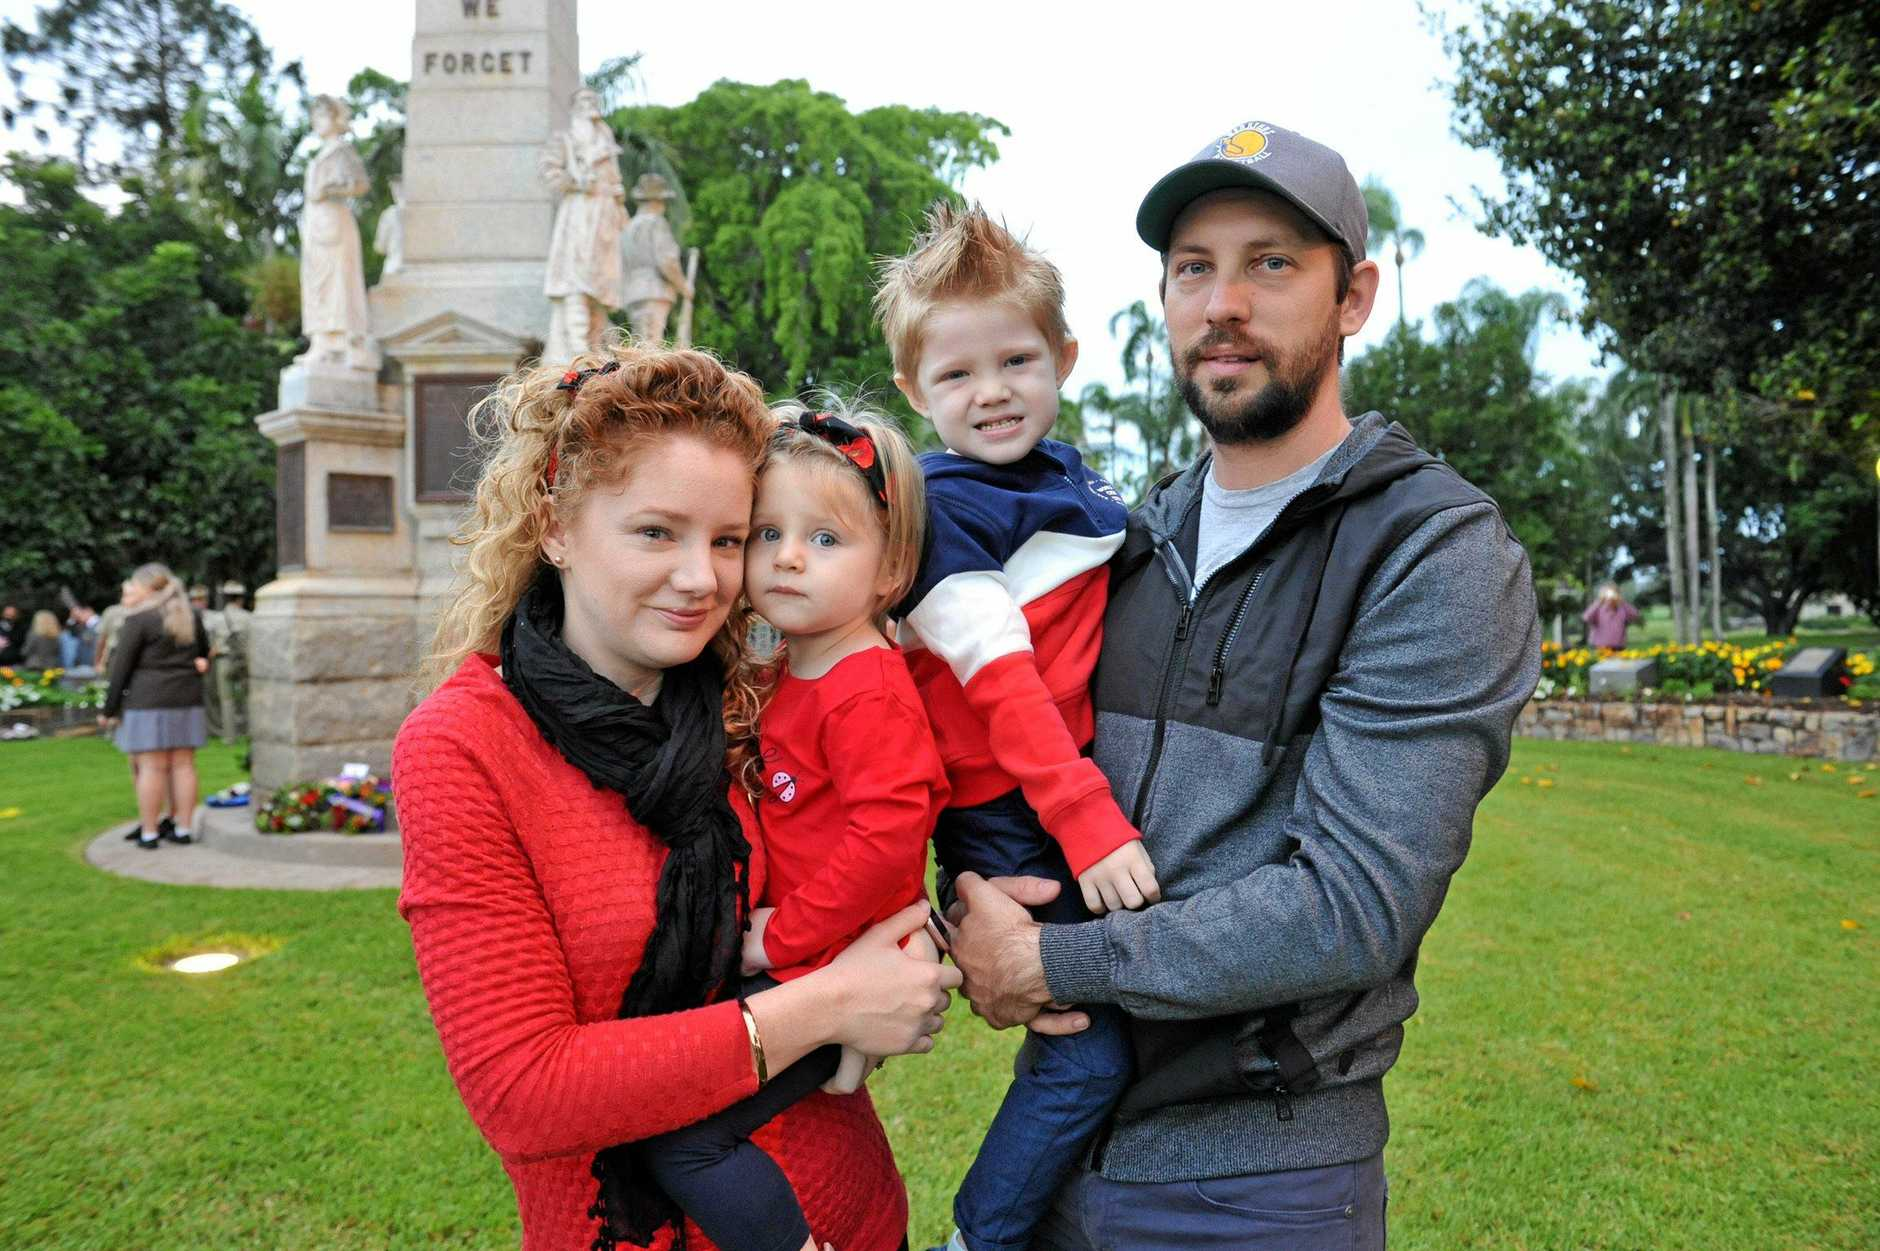 Patrick and Jessi Scanlon from Maryborough with their children Winter, 2, and Parker, 3, were up early to pay their respects to the fallen at this year's Maryborough Anzac Day dawn service.